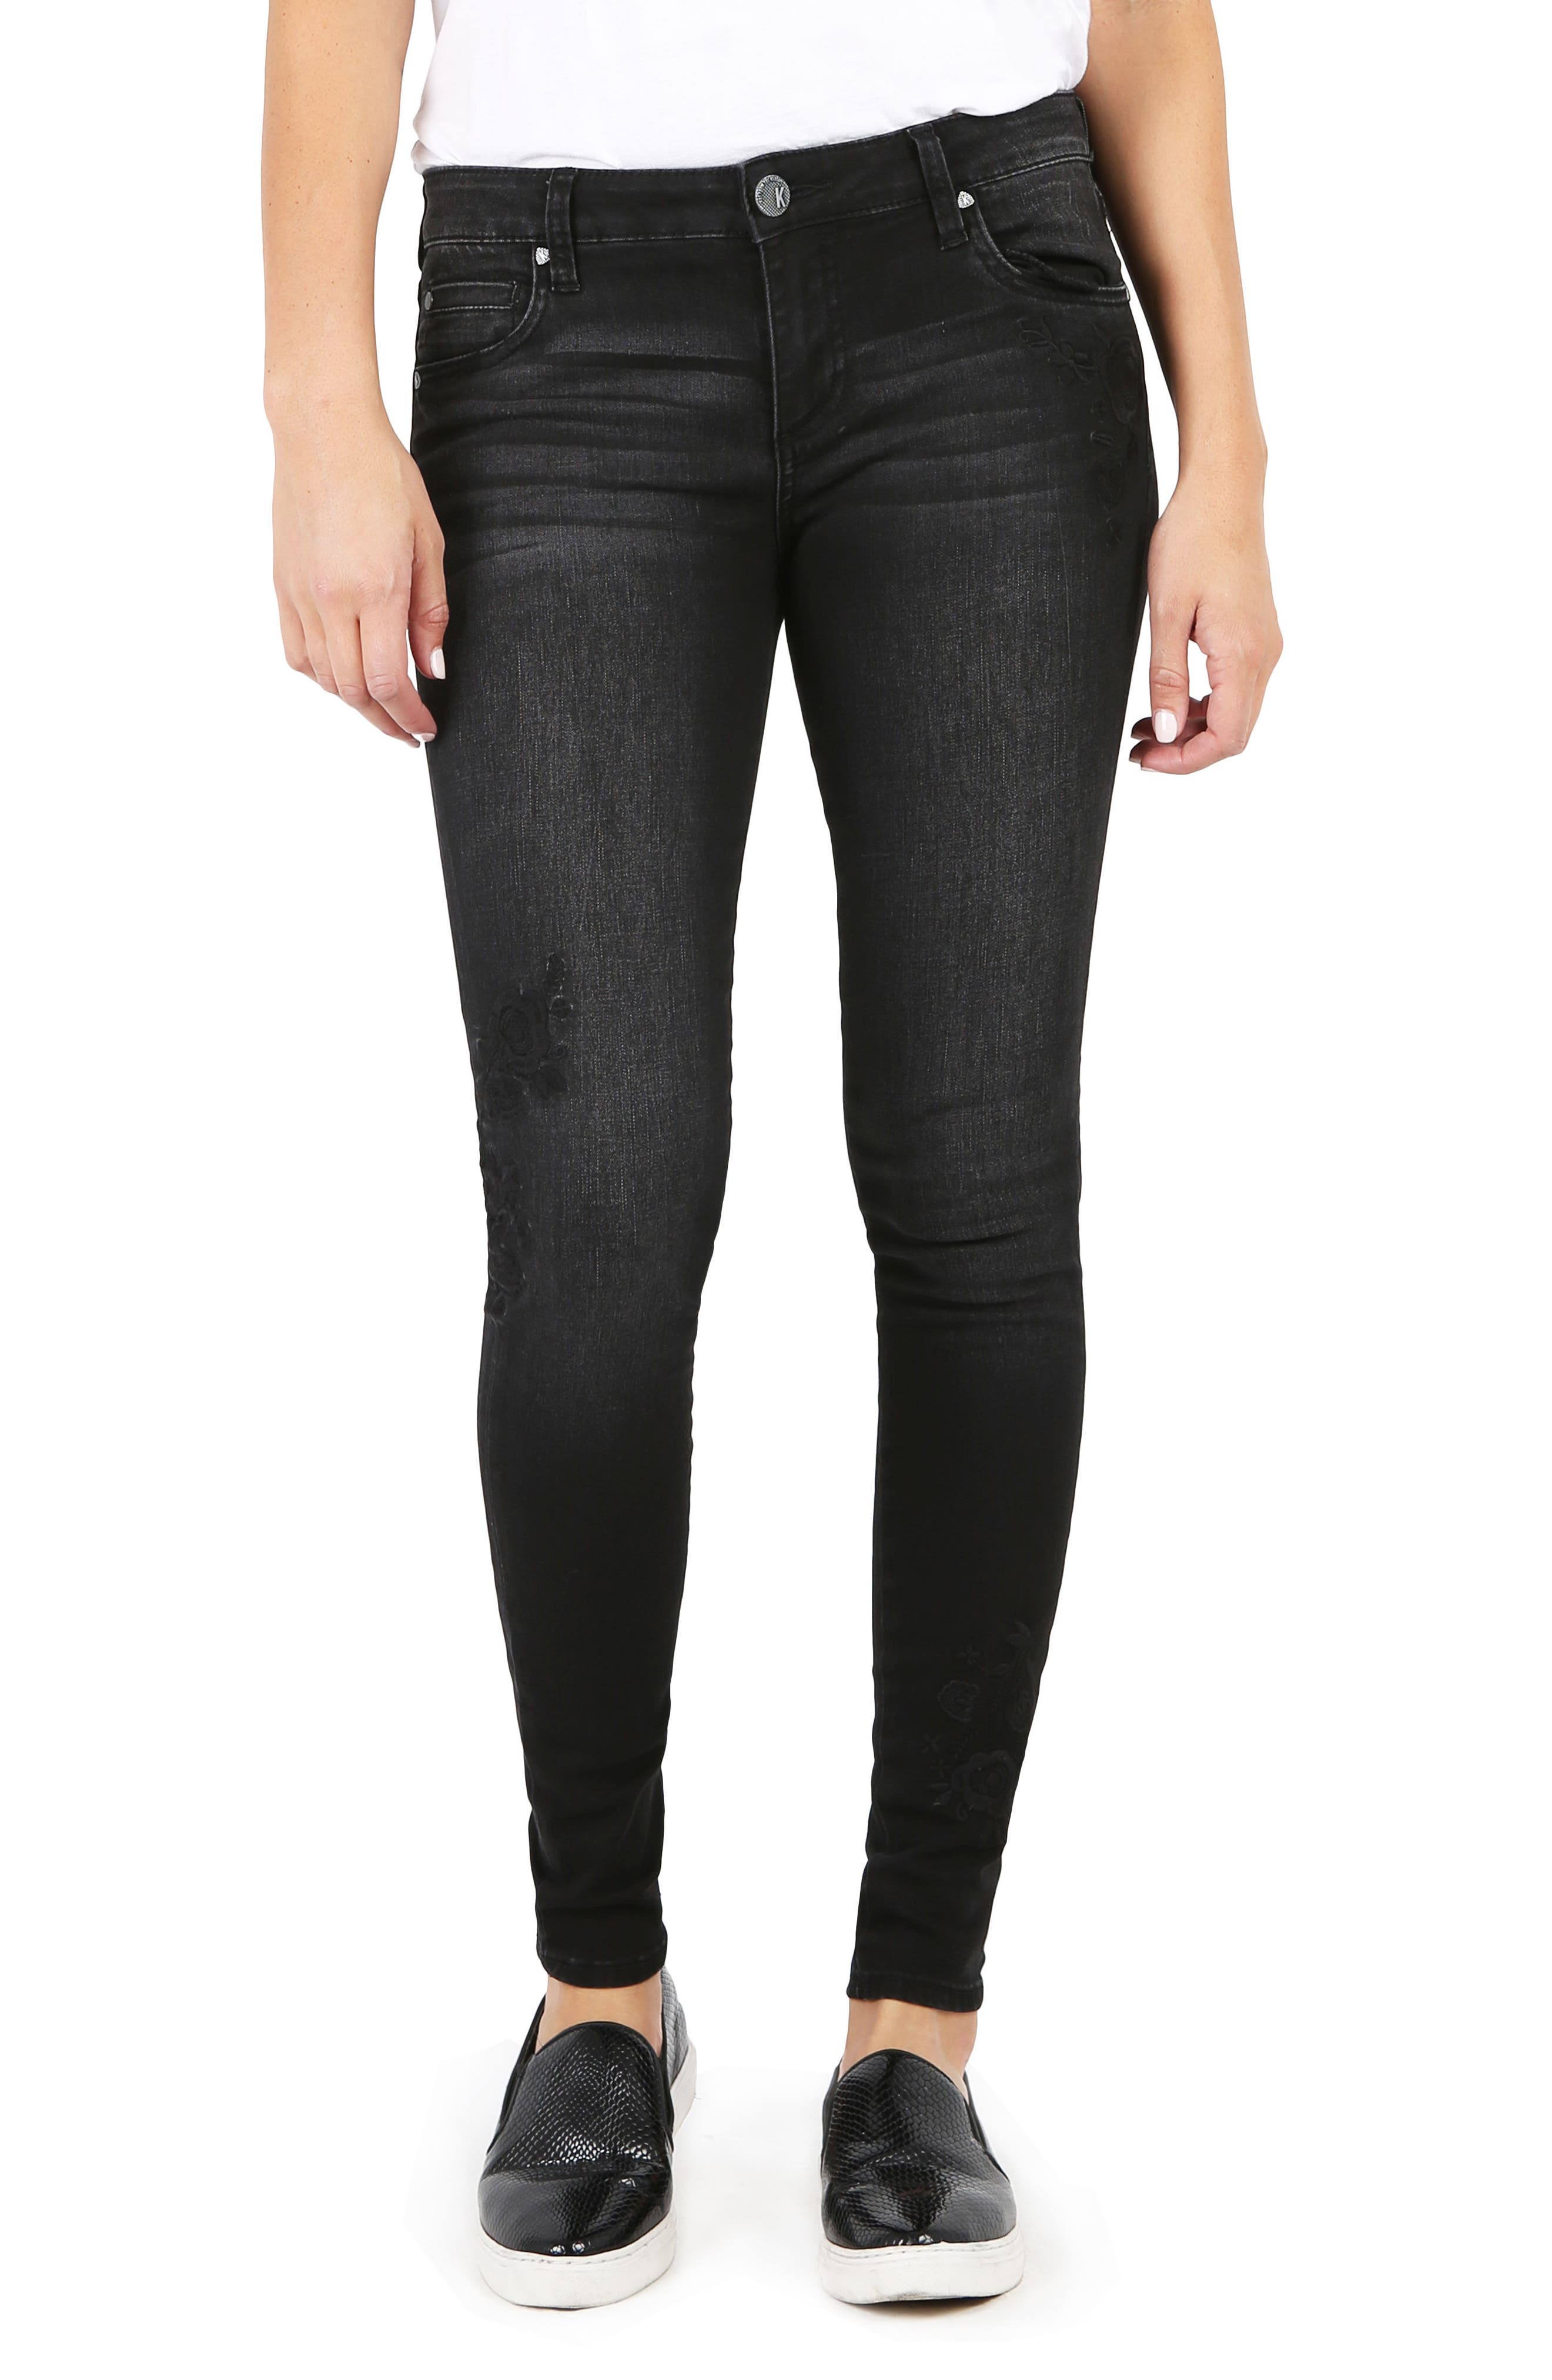 Mia Embroidered Skinny Jeans,                         Main,                         color, Versed W/ Black Base